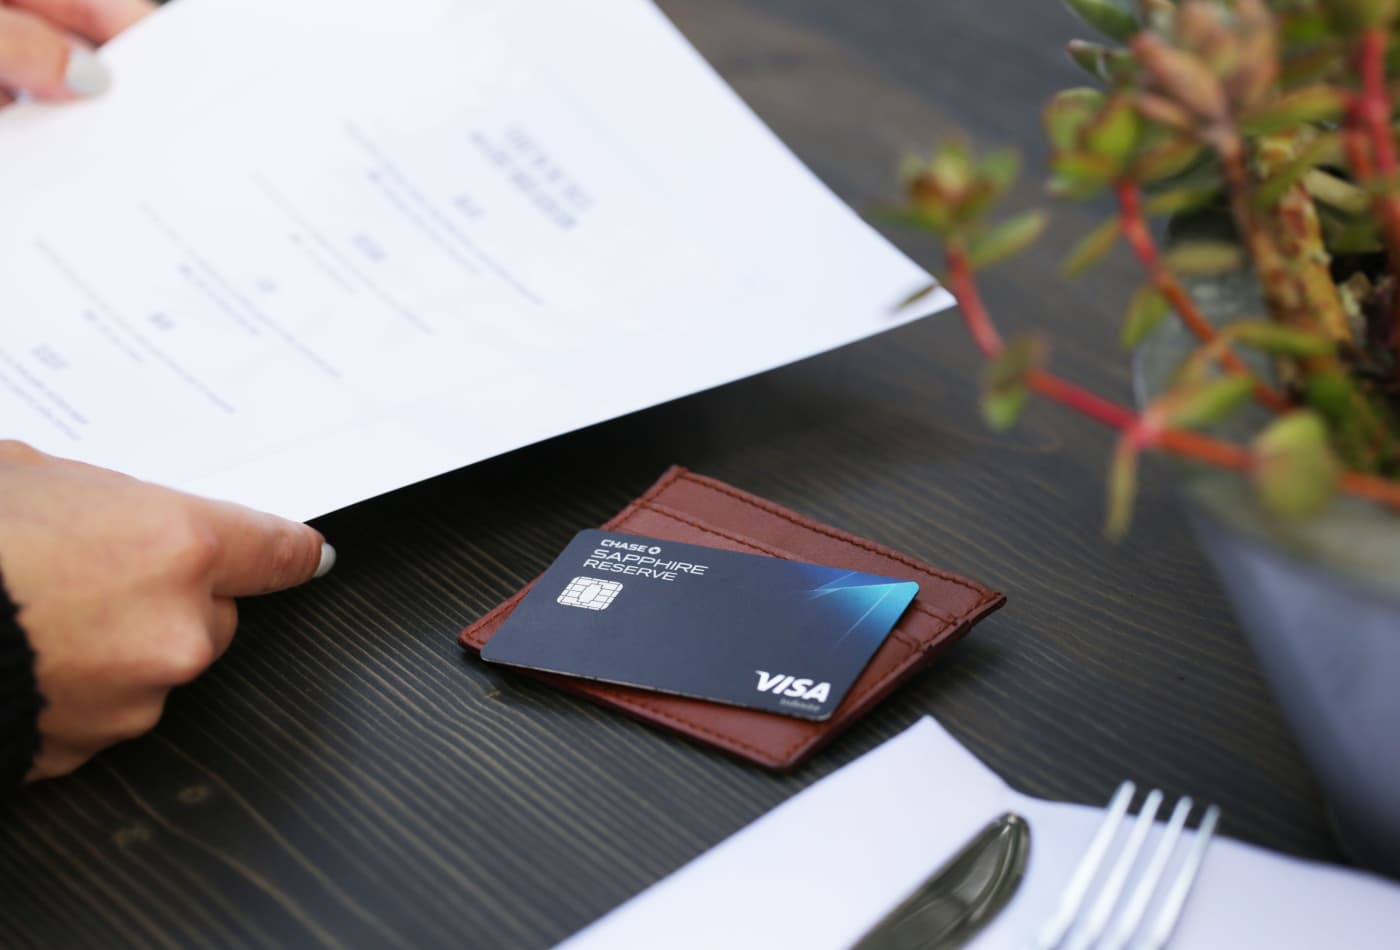 Chase Sapphire Reserve annual fee is increasing in 2020